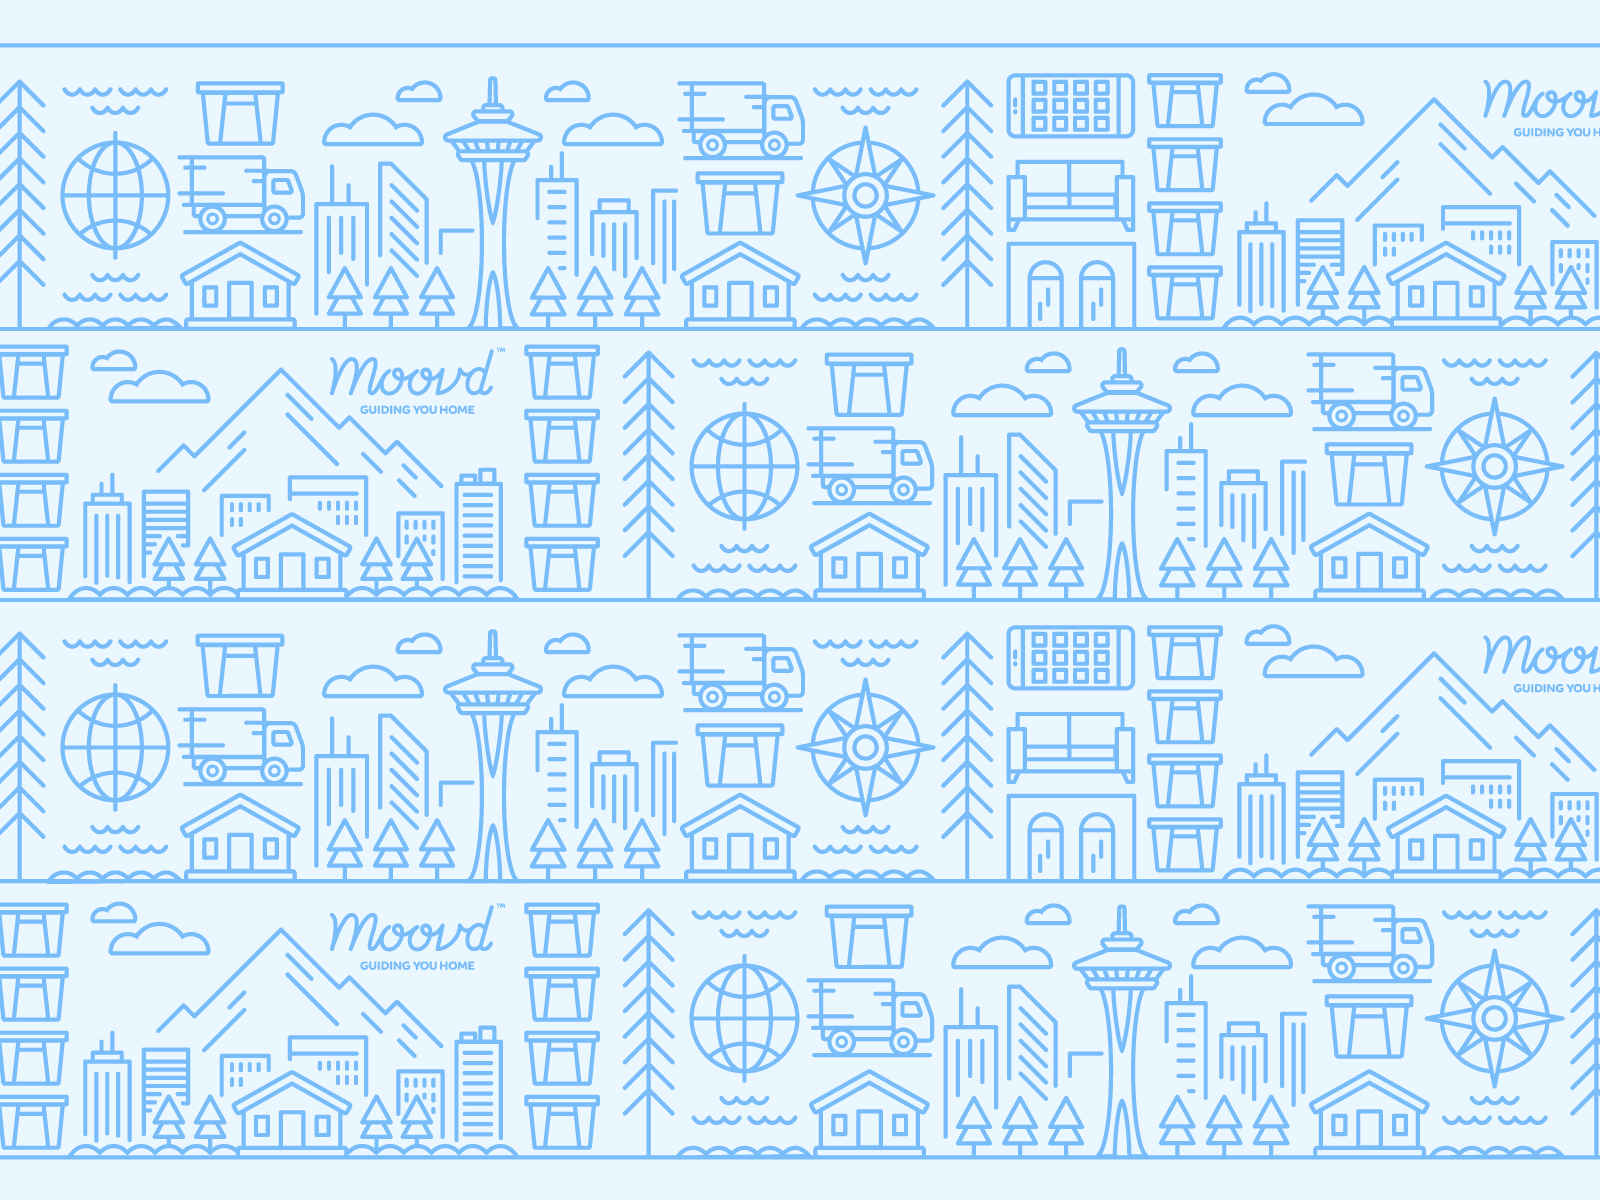 Dribbble rocky roark moovd illustration pattern